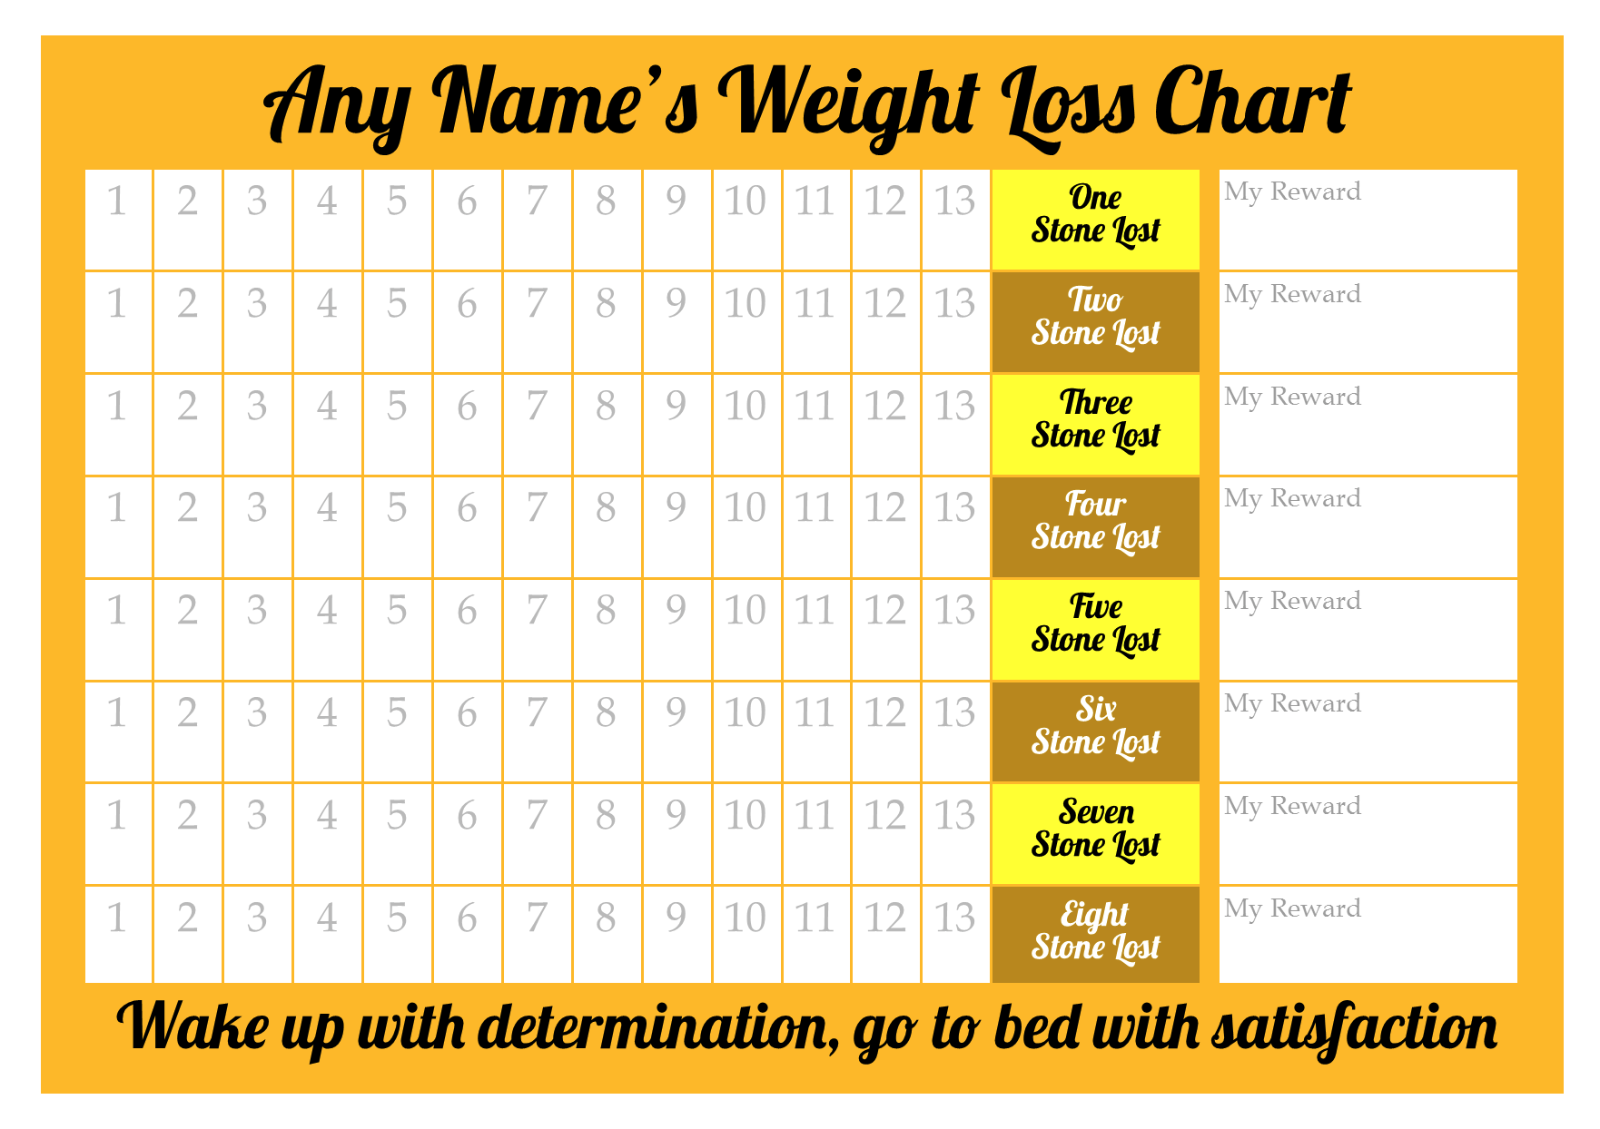 Personalised weight loss chart 8 stone laminated with 2 x sheet 3 of 5 personalised weight loss chart 8 stone laminated with 2 x sheet of stickers nvjuhfo Image collections